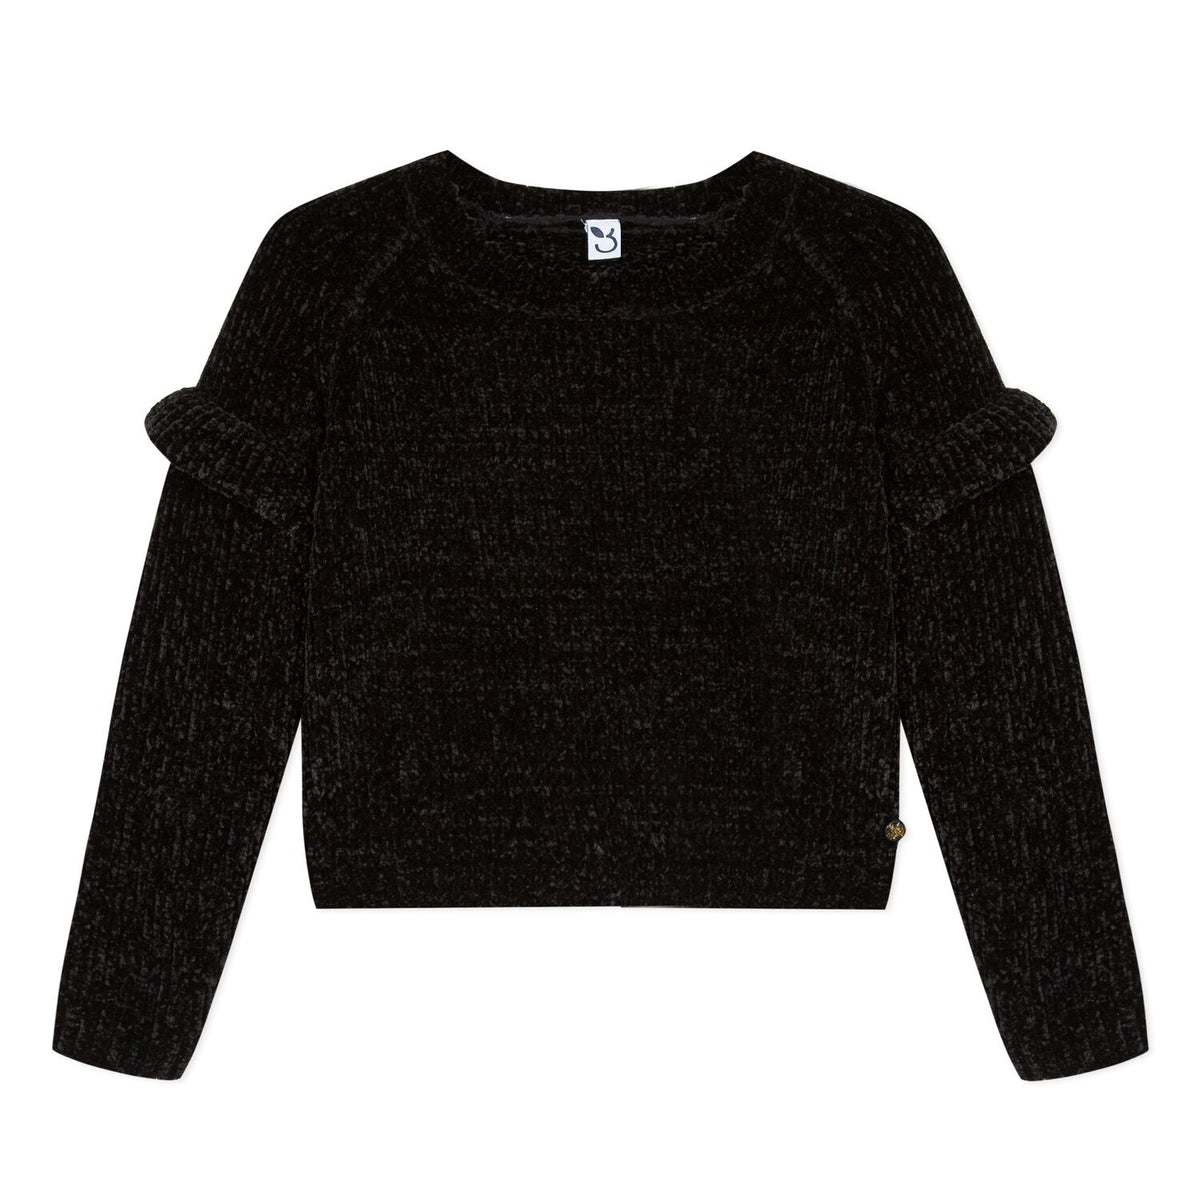 Girls Black Pullover Sweater